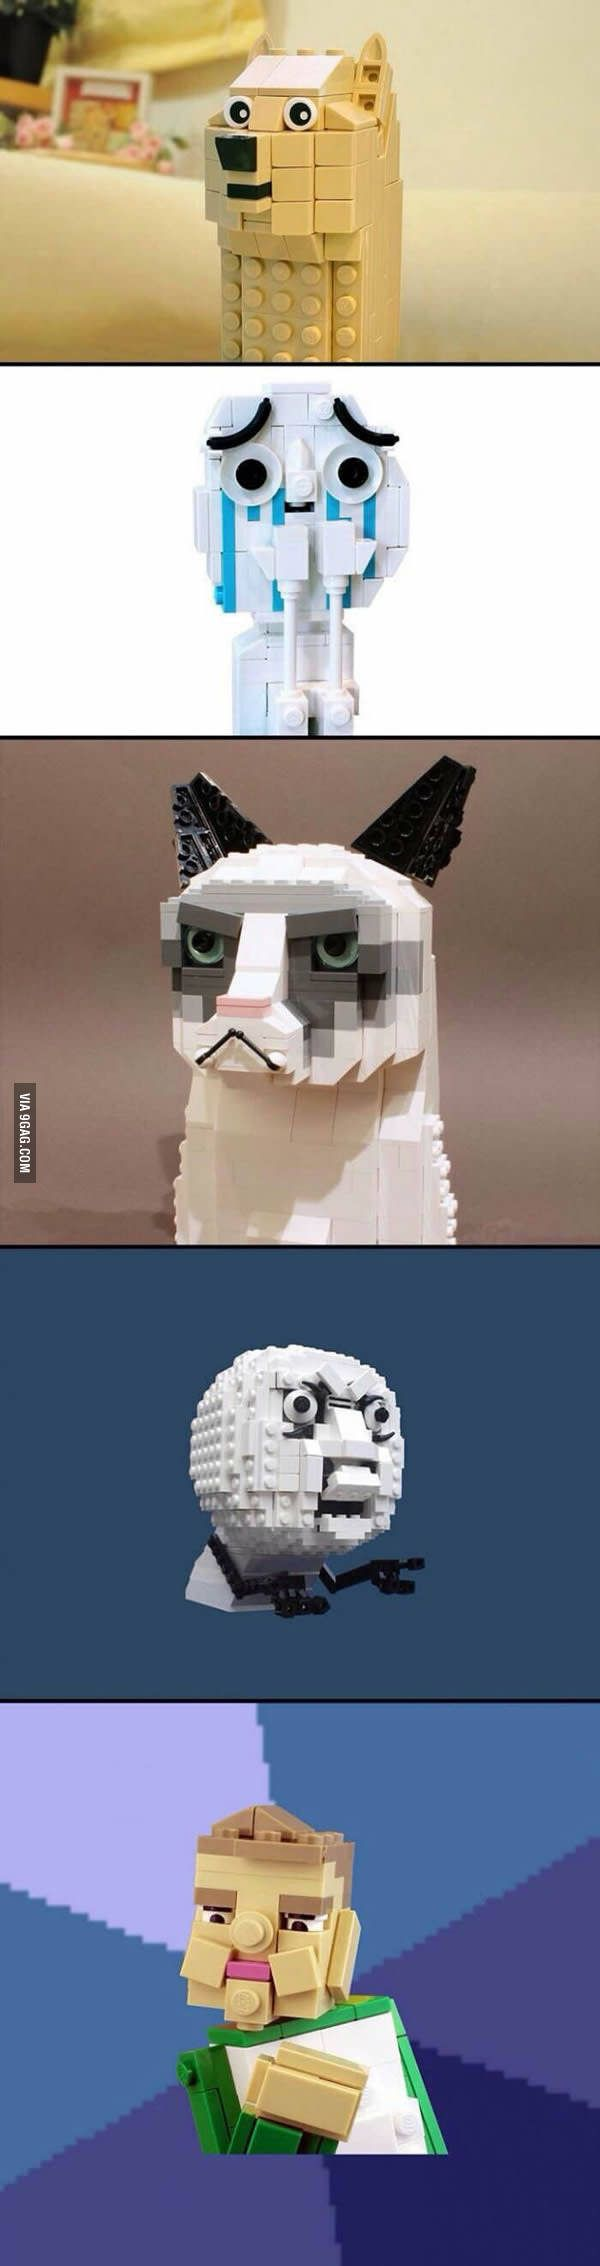 Lego version of memes. - 9GAG